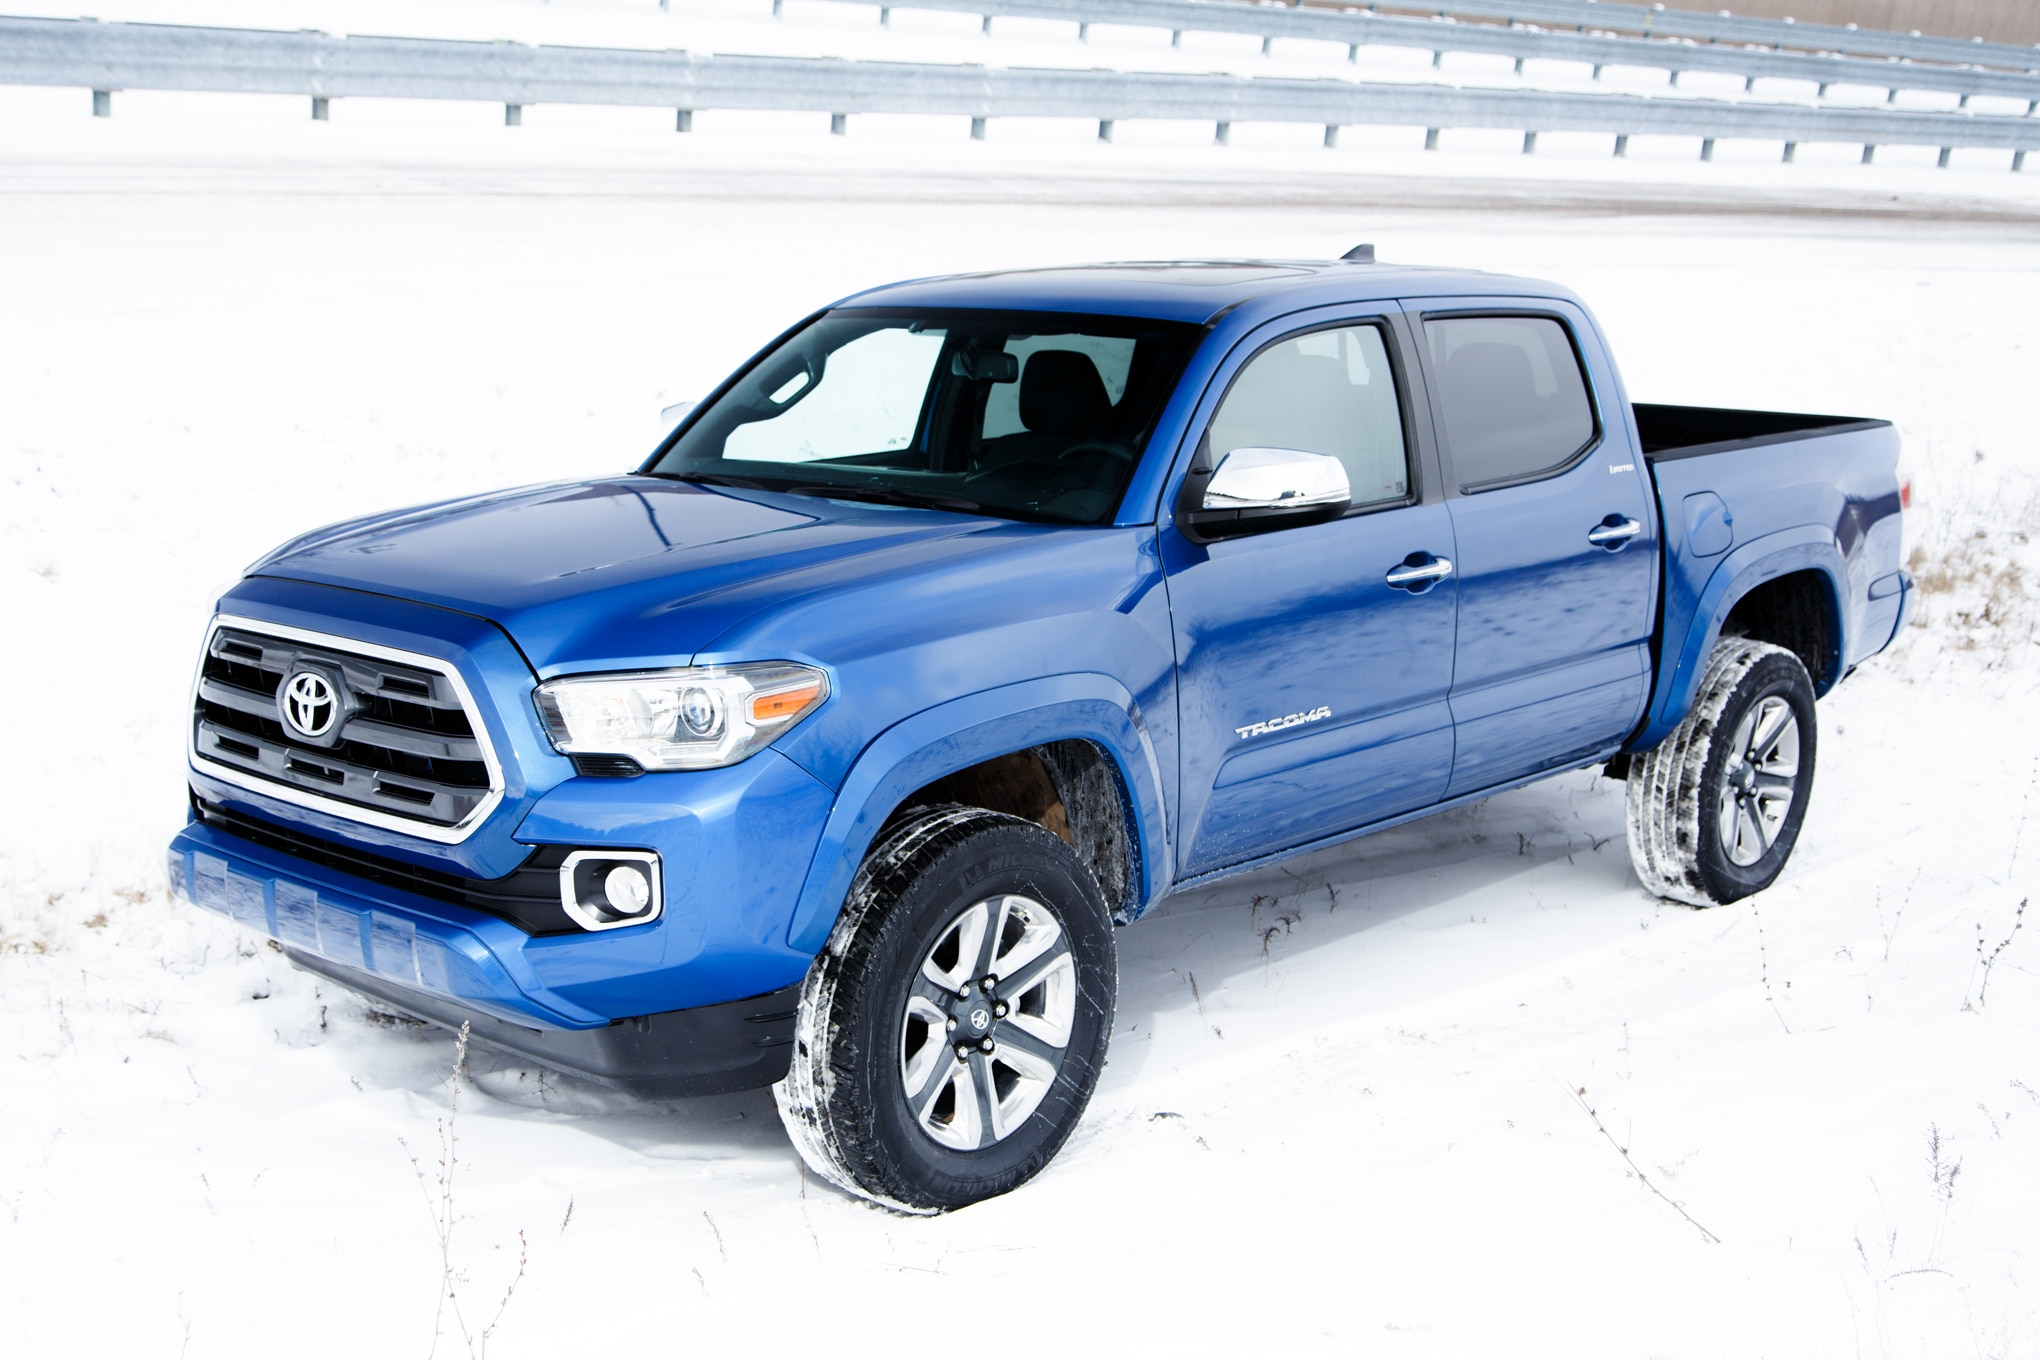 2016 toyota tacoma breaks cover ahead of detroit auto show. Black Bedroom Furniture Sets. Home Design Ideas